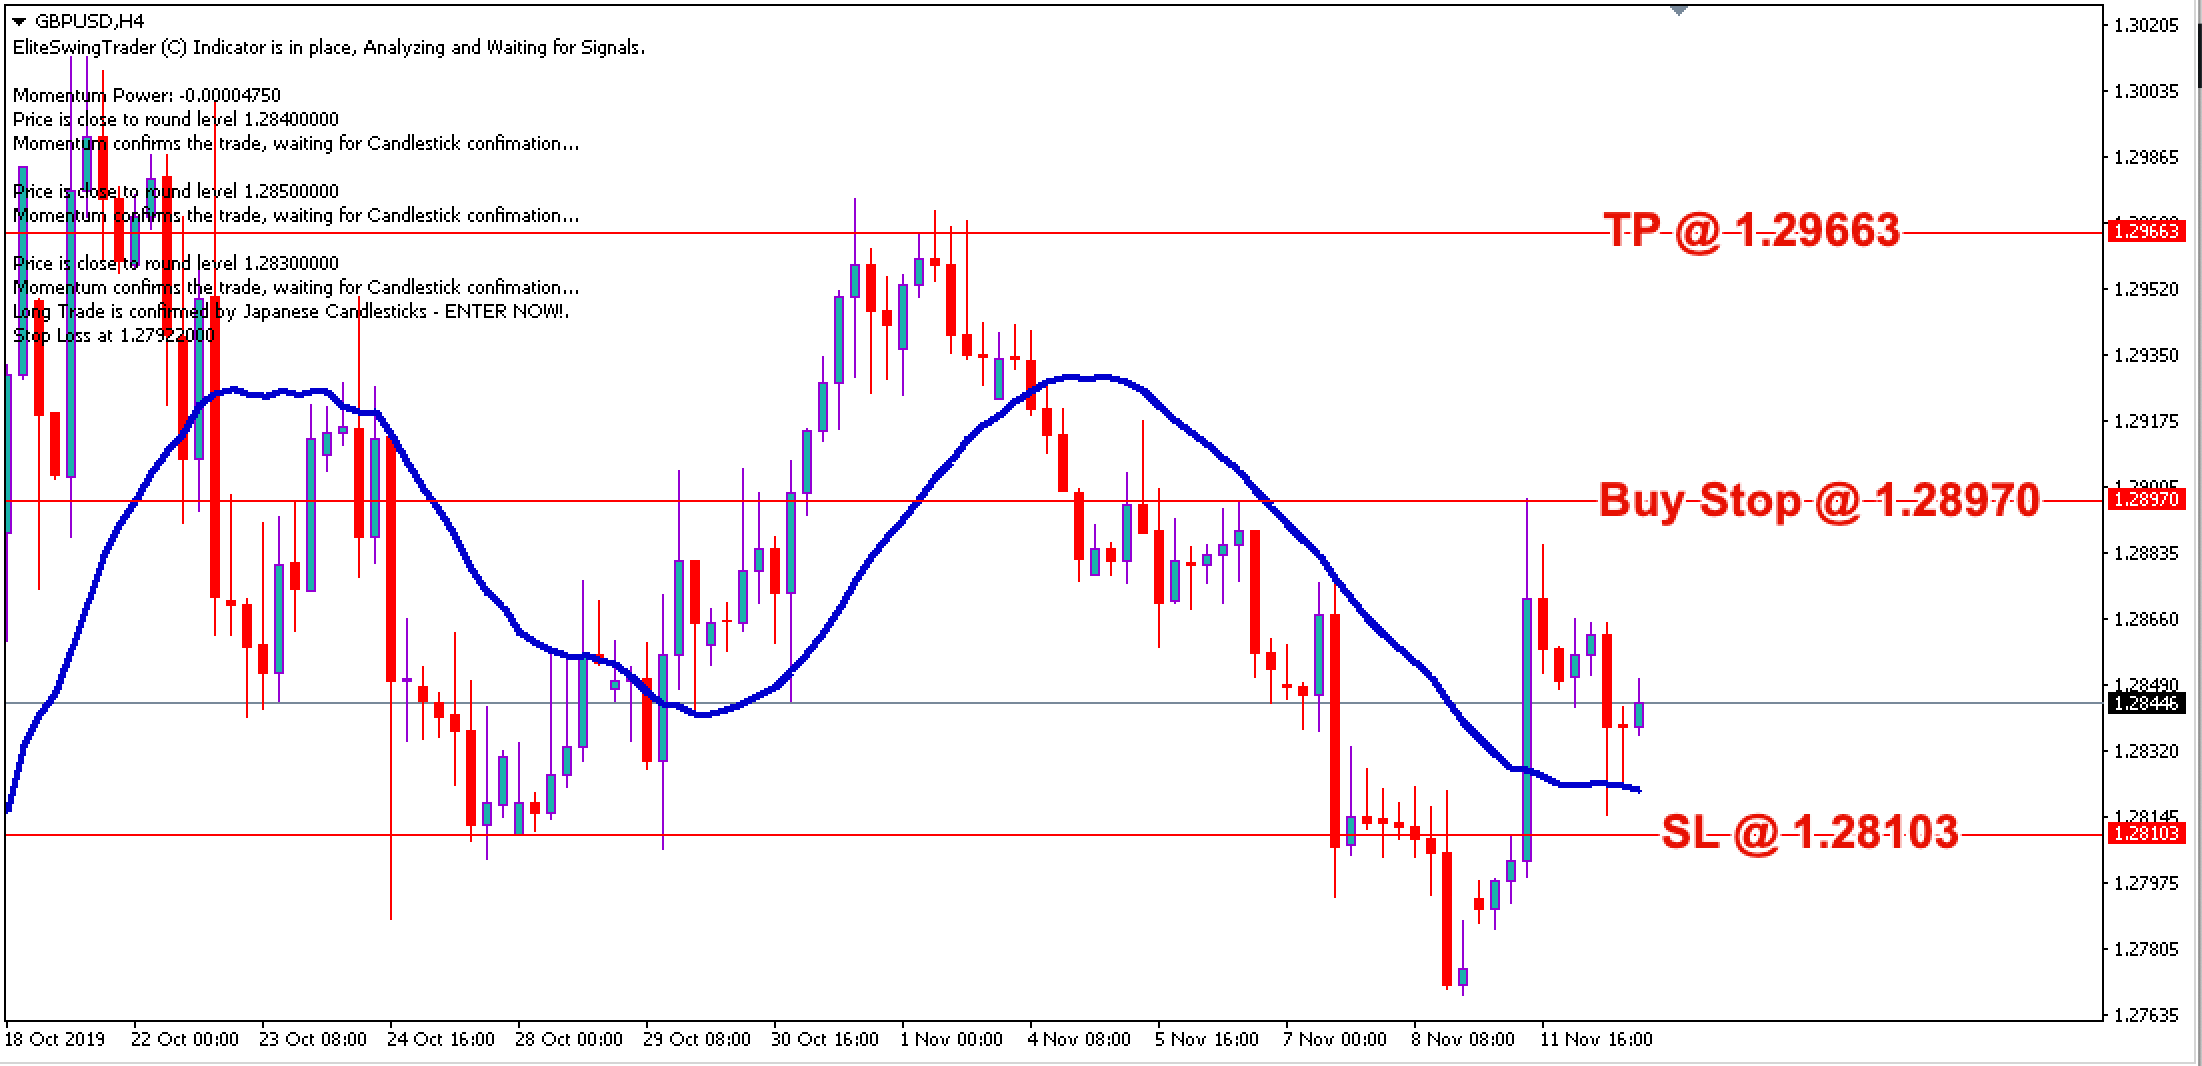 Free Forex Trade Signals GBPUSD – 12th Nov 2019